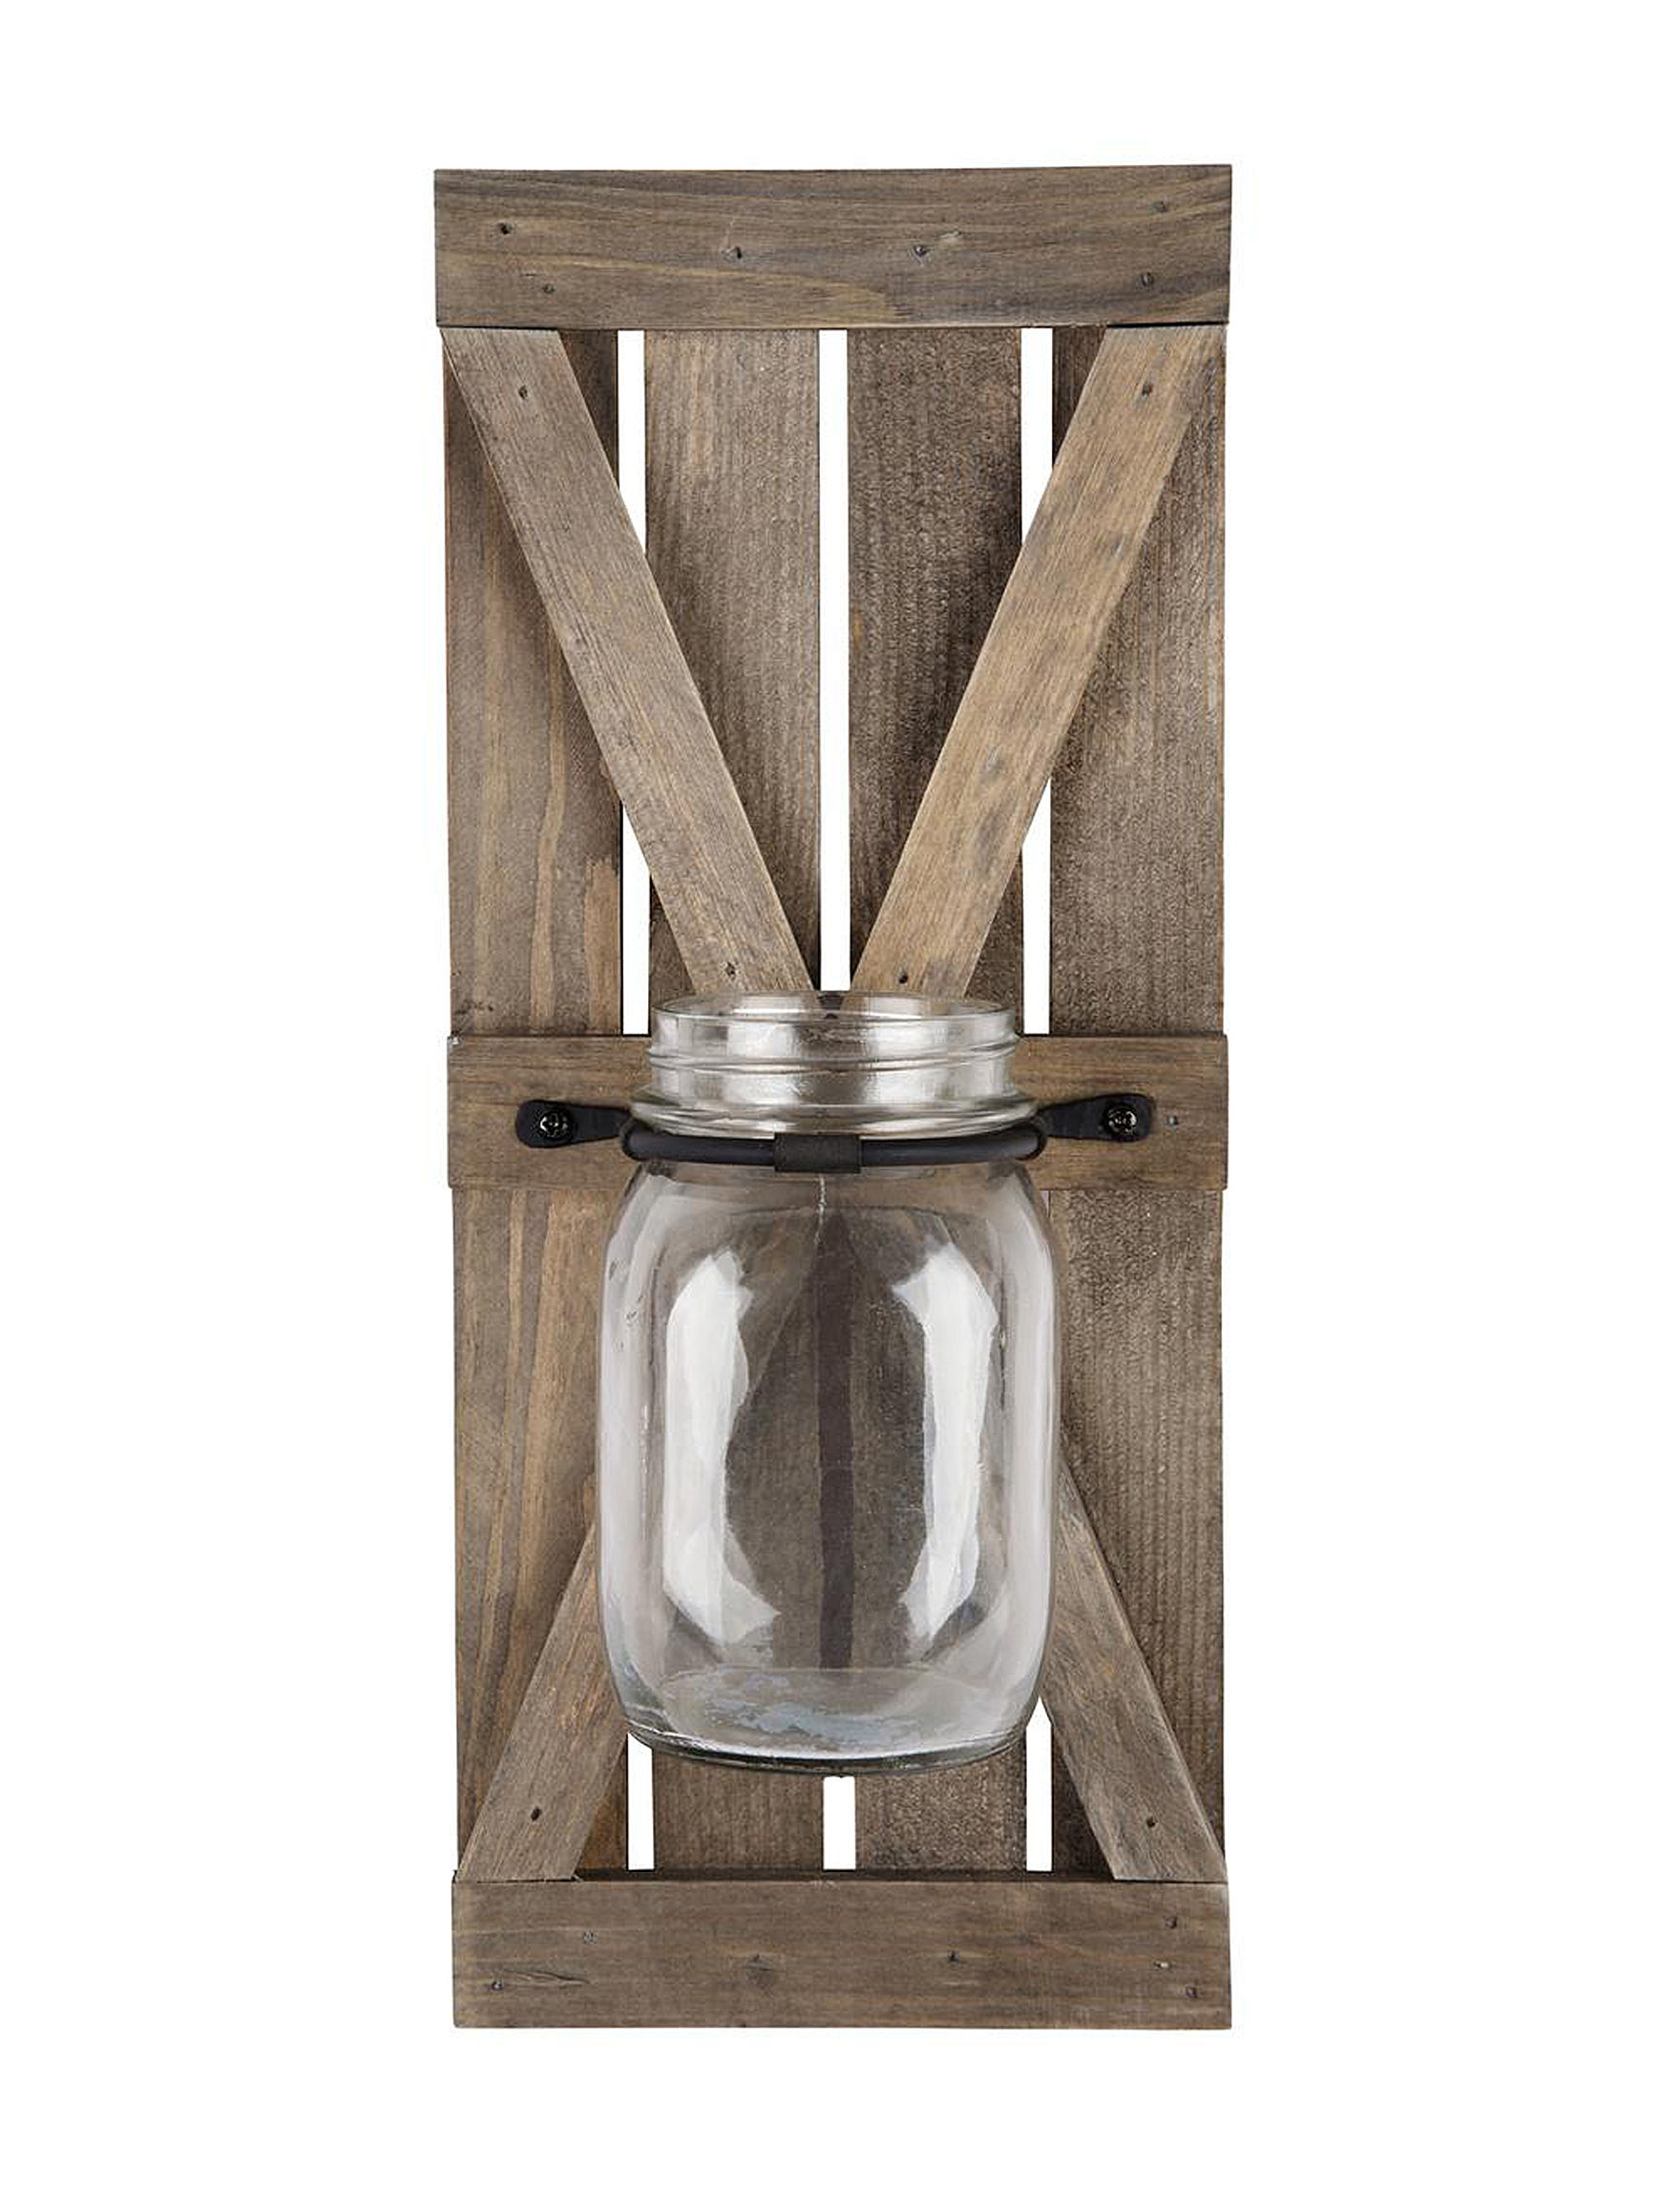 Home Essentials Brown / Black Candle Holders Candles & Diffusers Wall Decor